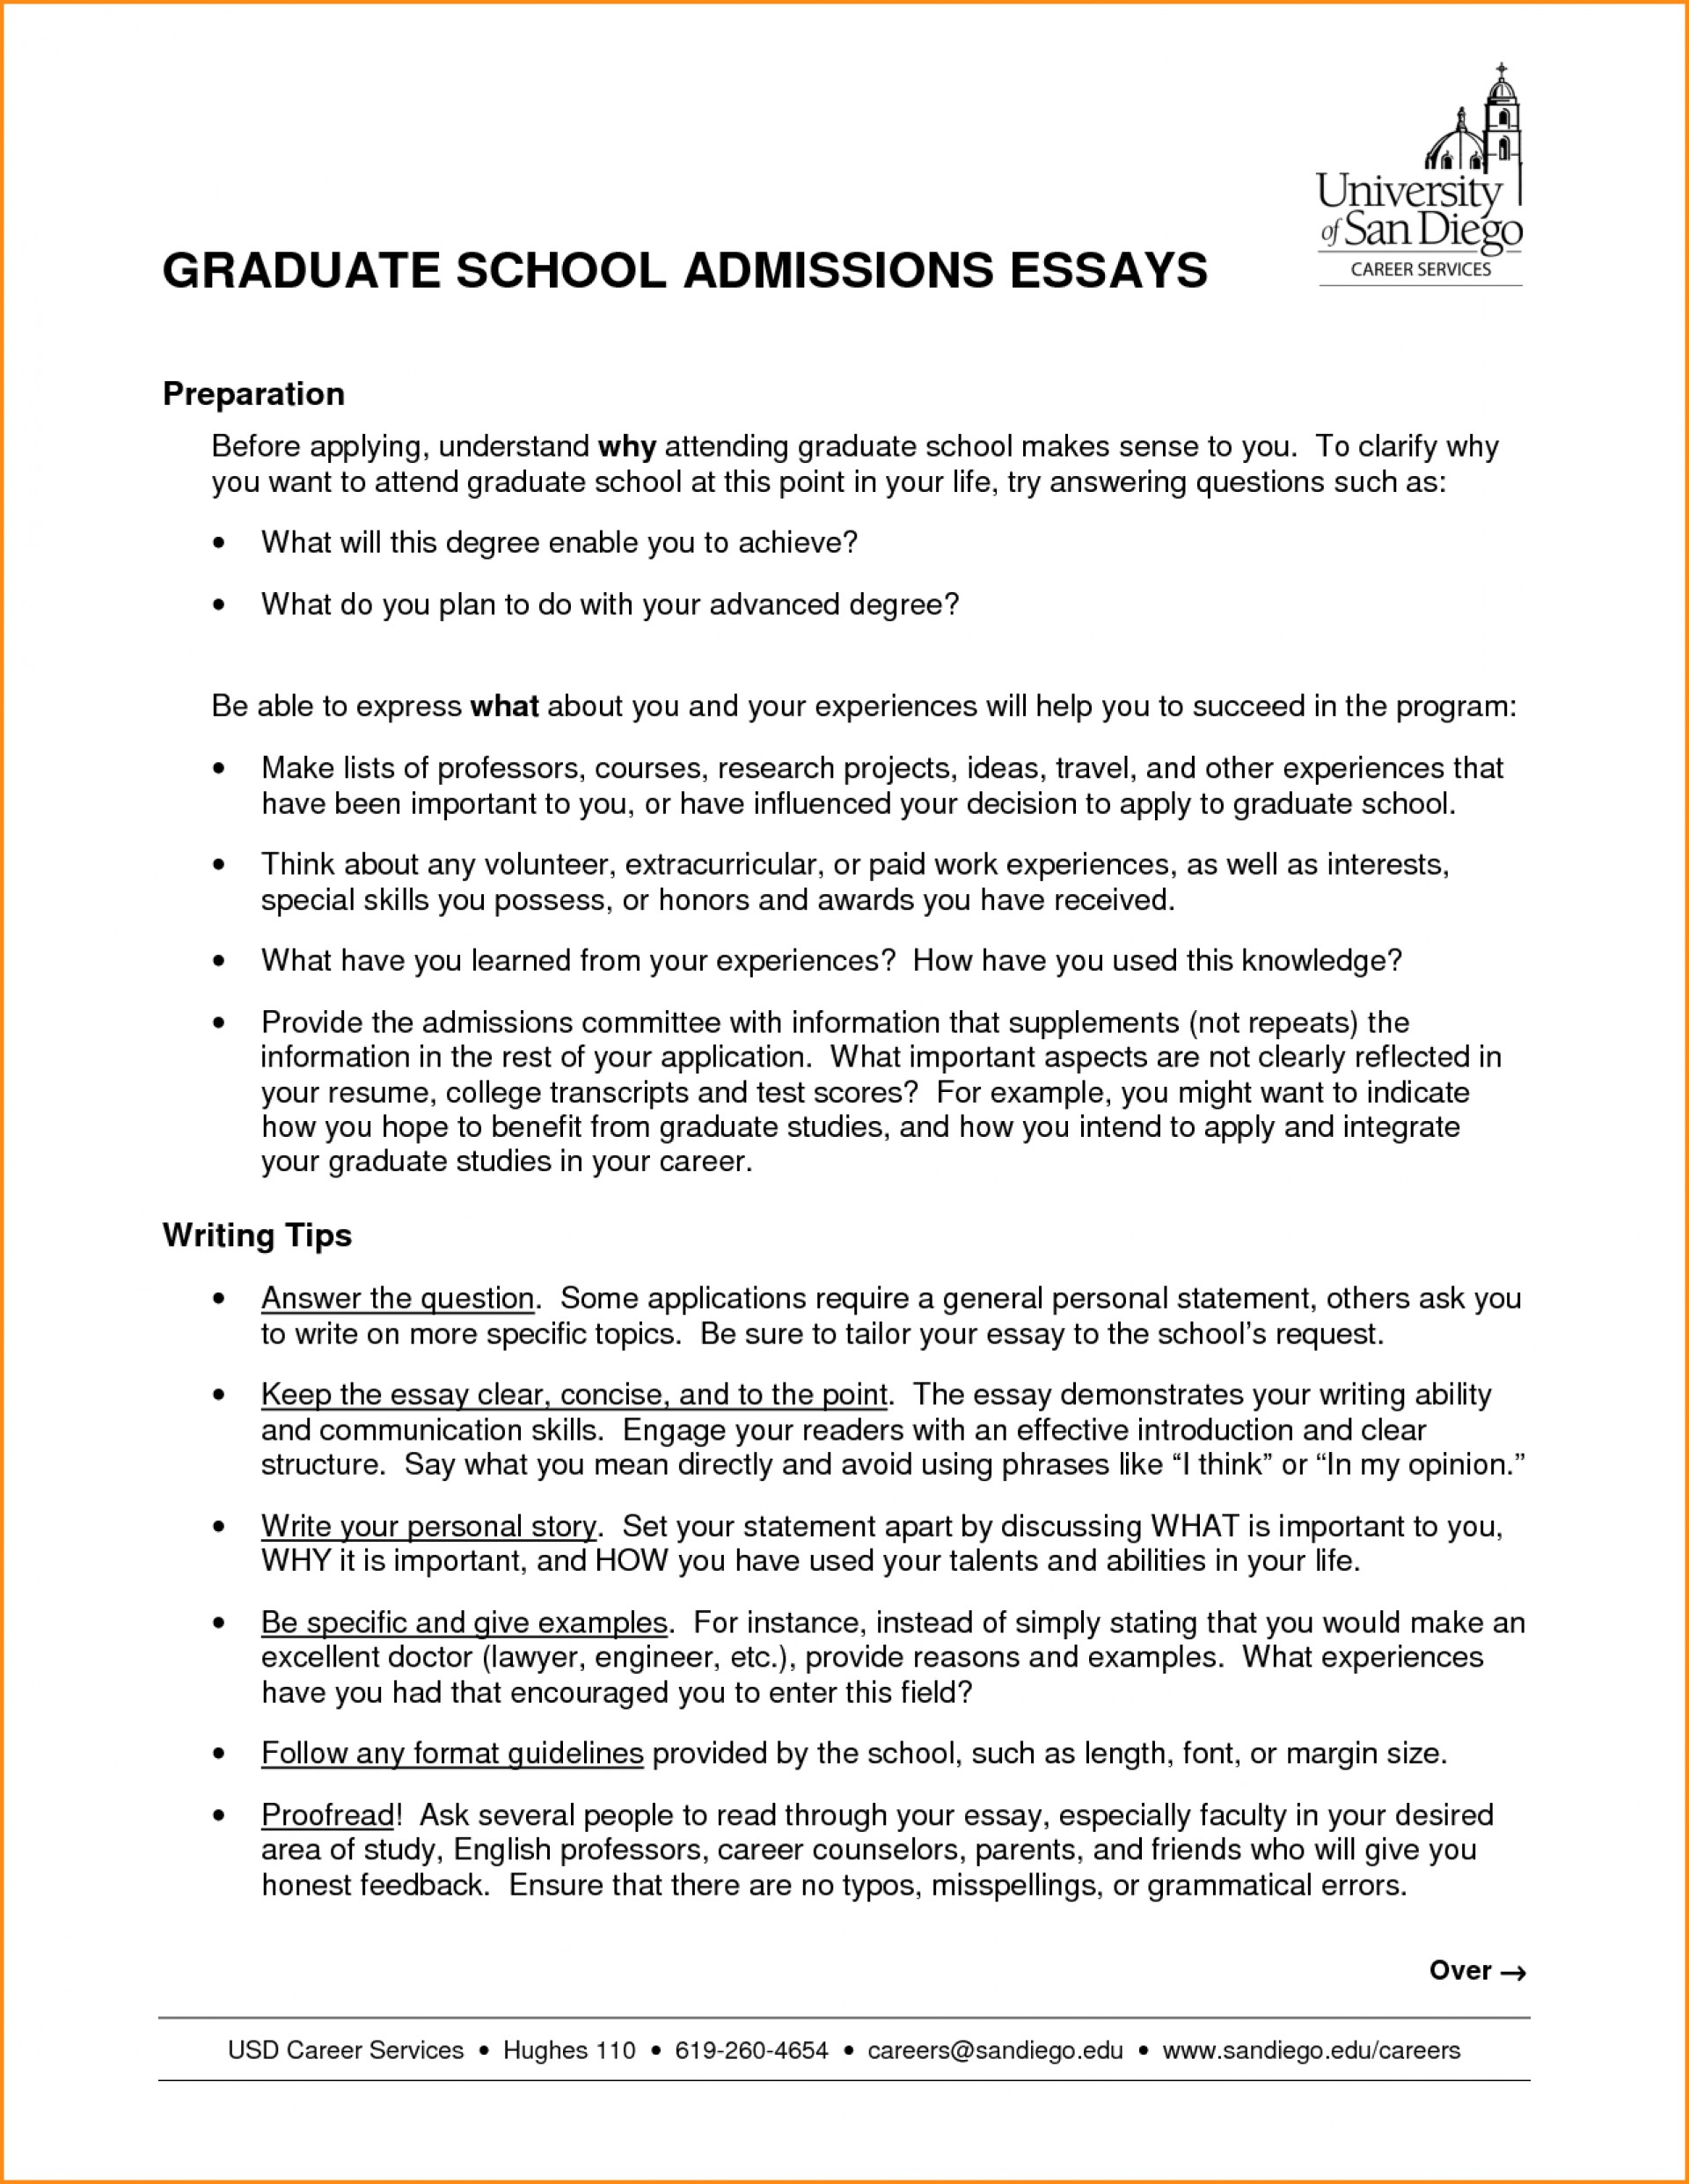 005 High School Graduation Essay Science Competitions For Students Pics Sample College Essays Applic International Competition Contests Example Excellent Topics Research Paper Writing Prompts 1920